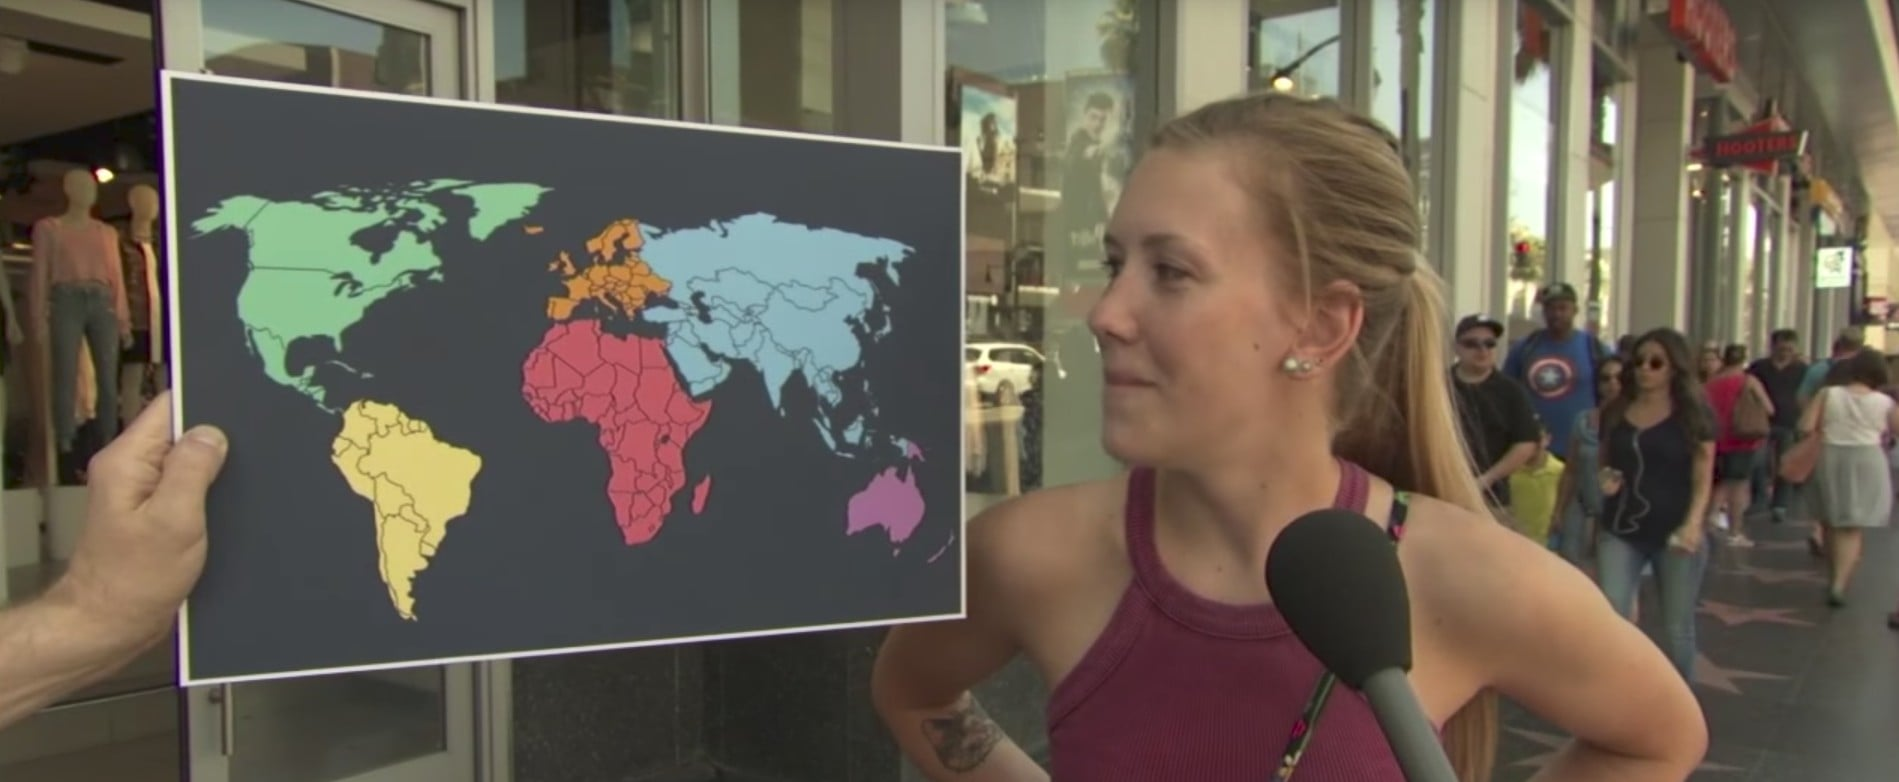 Jimmy Kimmel Asks Americans Where North Korea Is on a Map